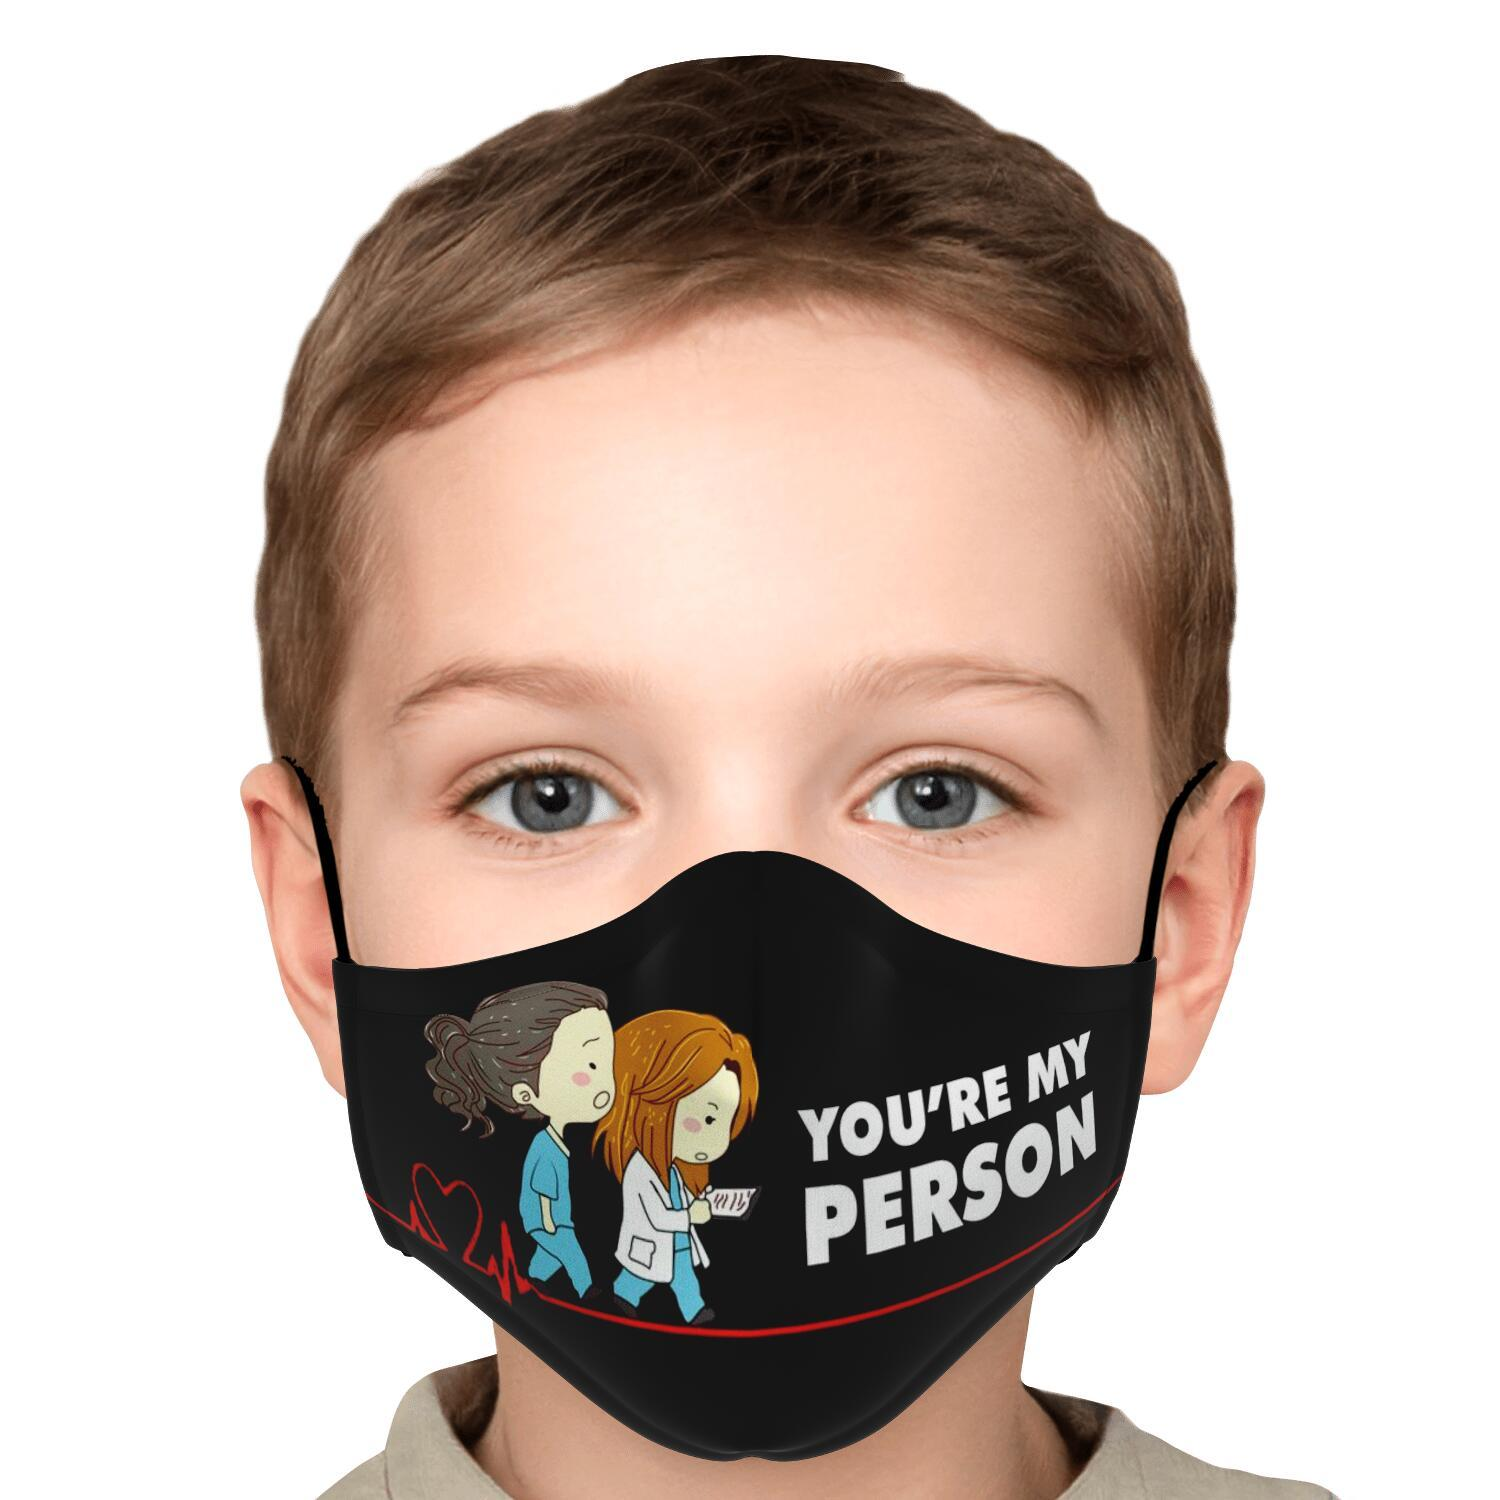 You're My Person Grey's Anatomy Face Mask 10